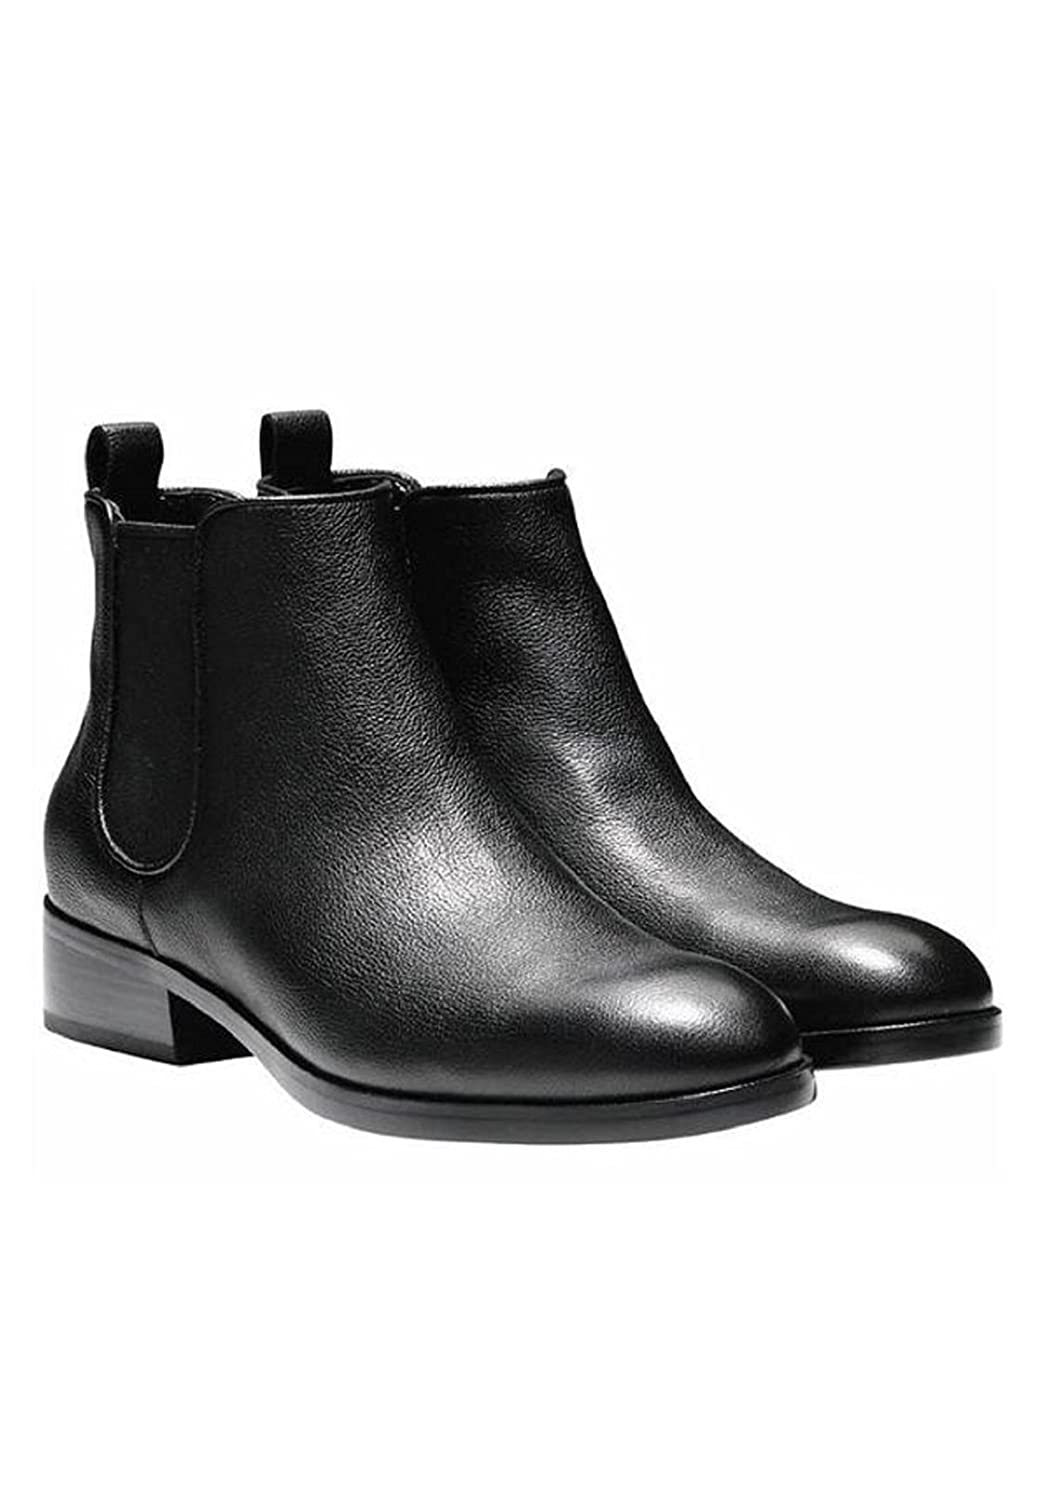 cf62823518f Cole Haan Women's Landsman Booties Short Leather Causal Ankle Boot Black